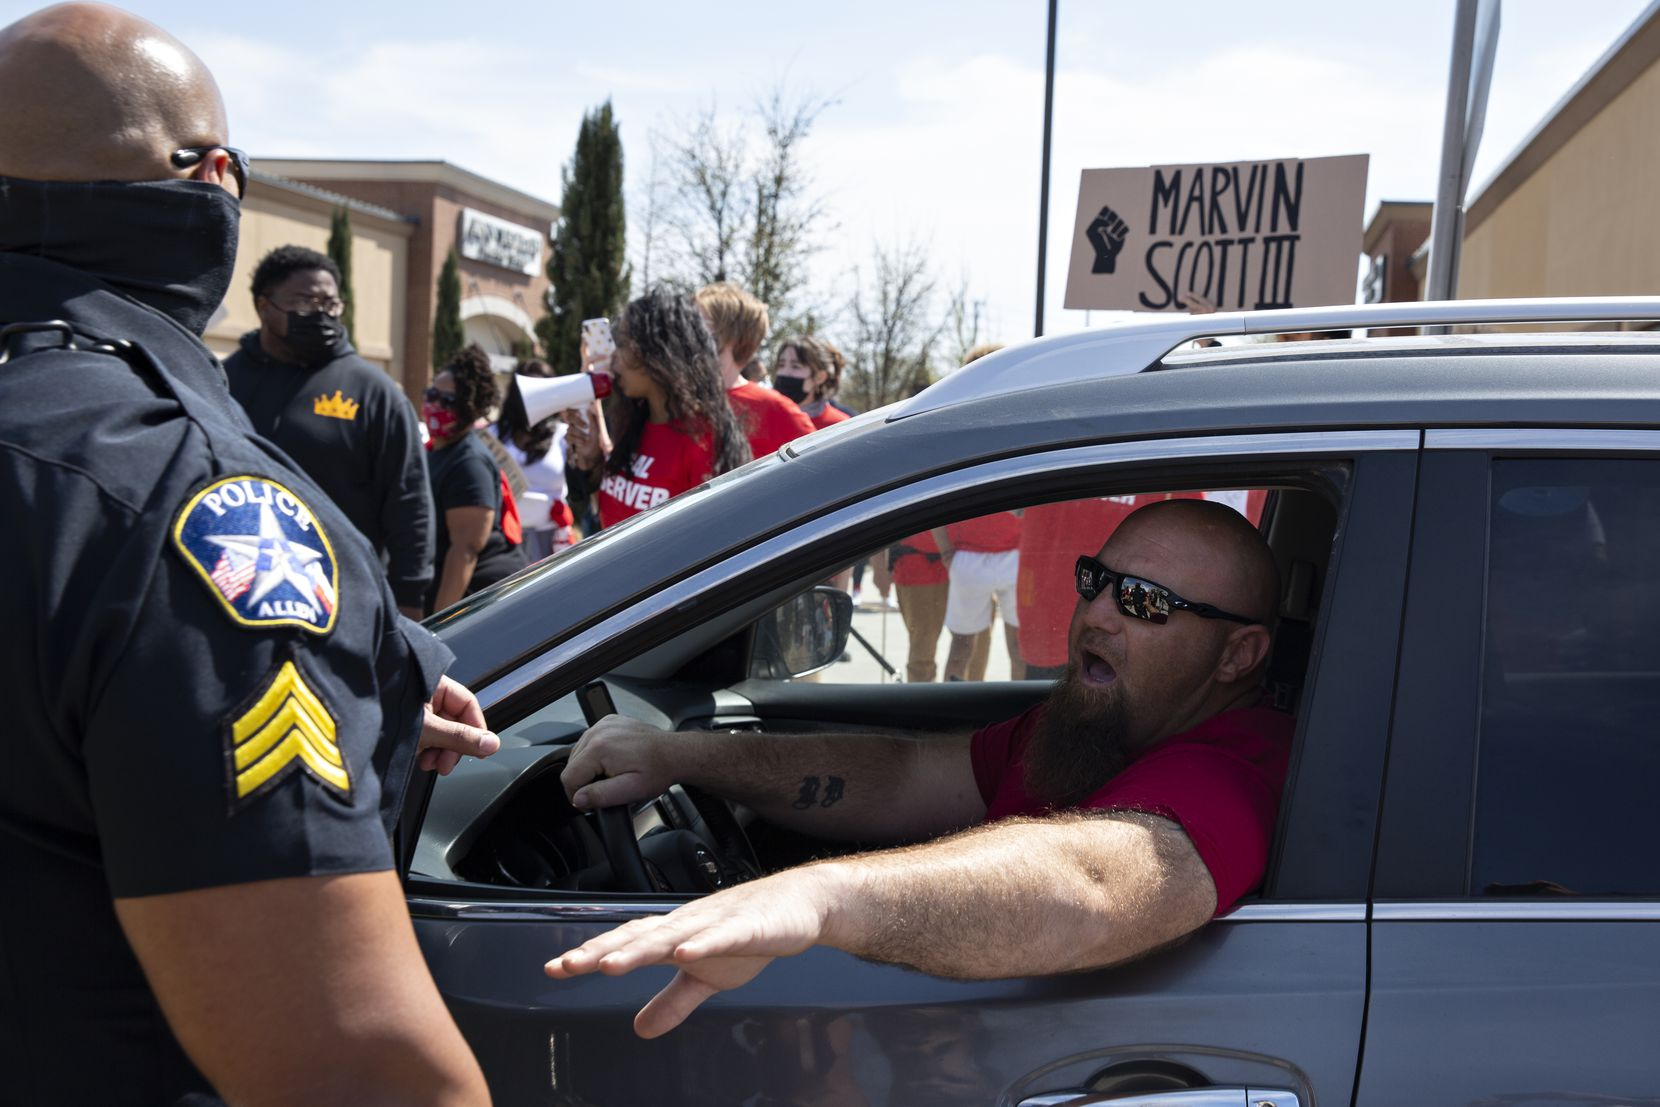 A driver gets frustrated with the traffic caused by a march through the Allen Outlets on Sunday, March 21, 2021 demanding justice for Marvin Scott III, who died a week prior while in custody at the Collin County Jail on March 14, 2021. (Shelby Tauber/Special Contributor)